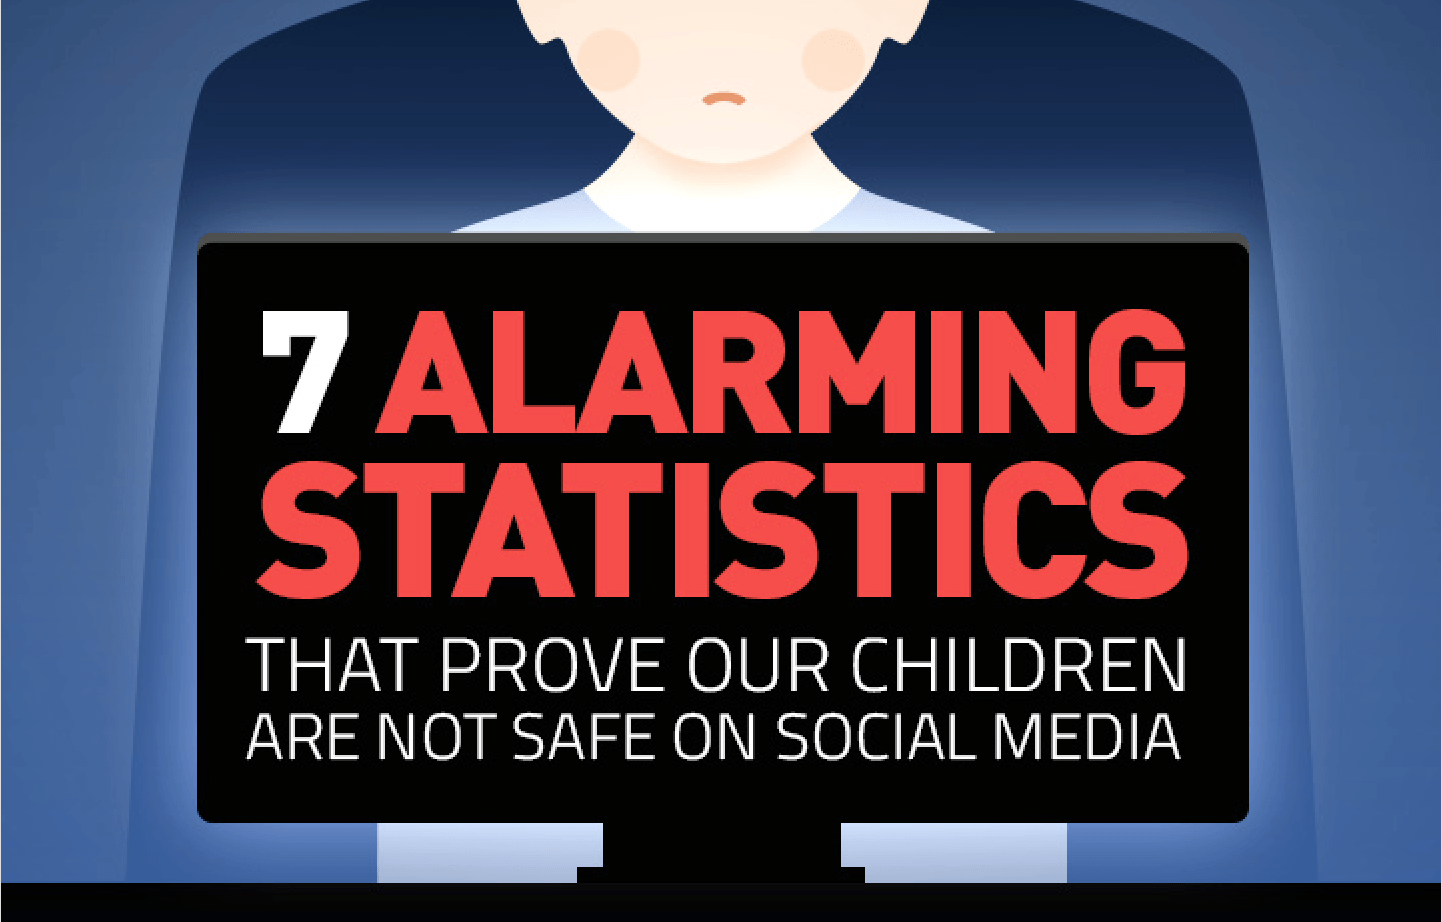 7 Alarming Statistics that Prove Children Aren't Safe on Social Media